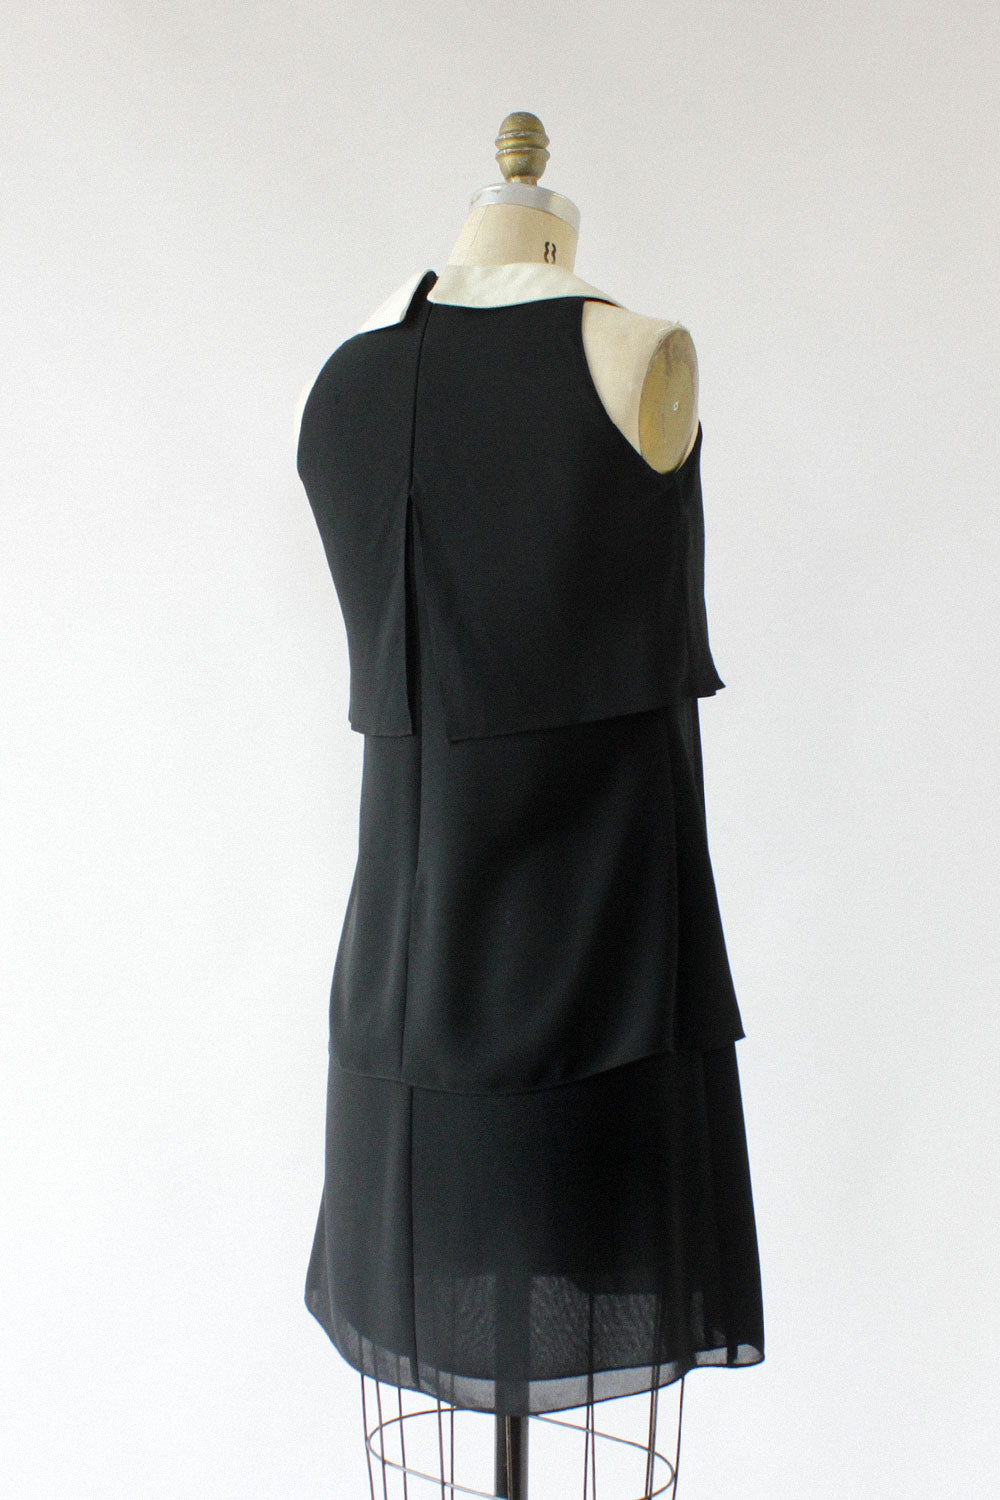 Bergdorf Tiered Collar Dress XS/S